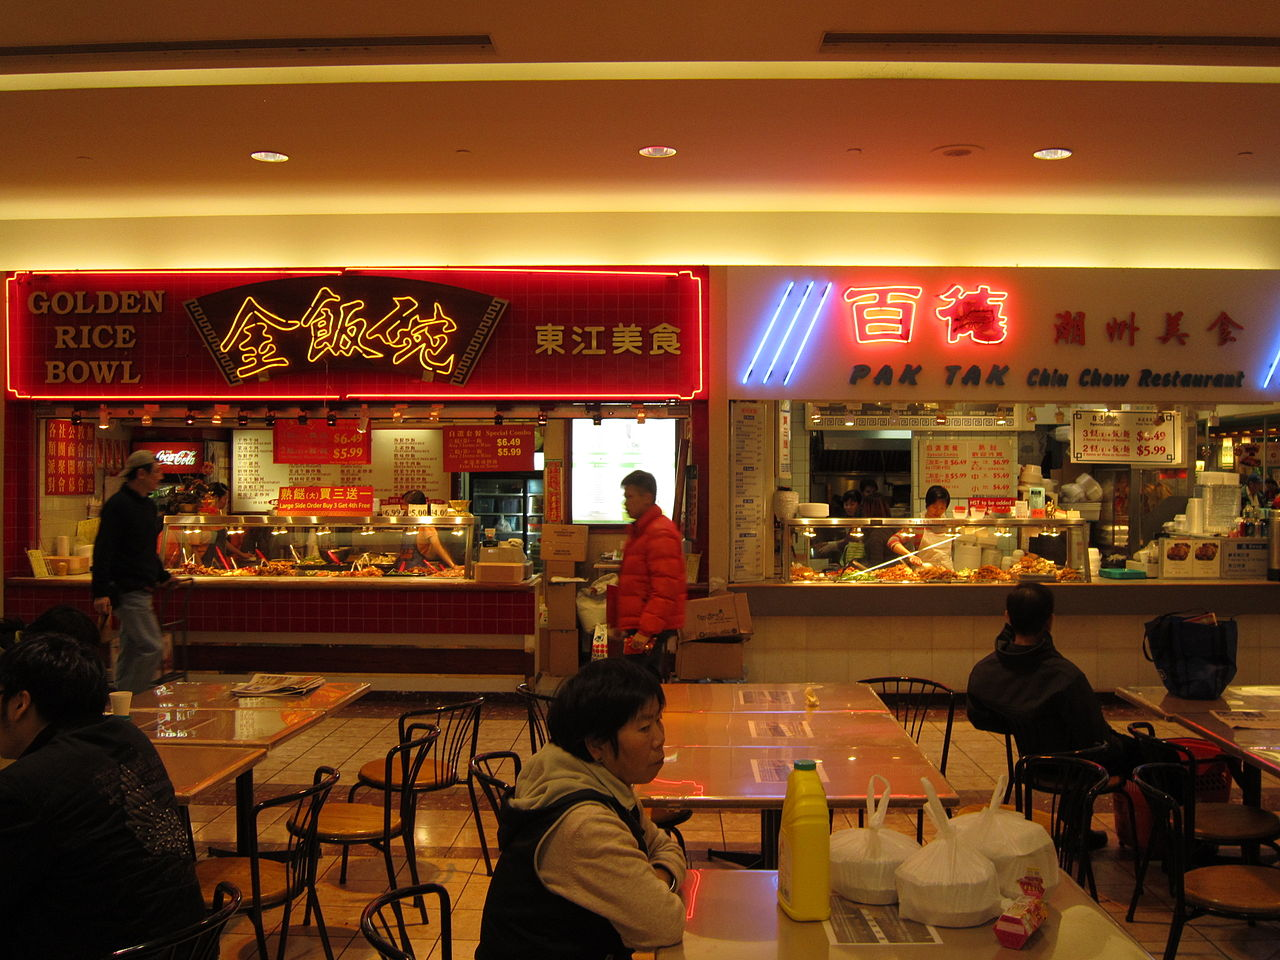 Yaohan food court, golden village, Things to do in Richmond, Canada